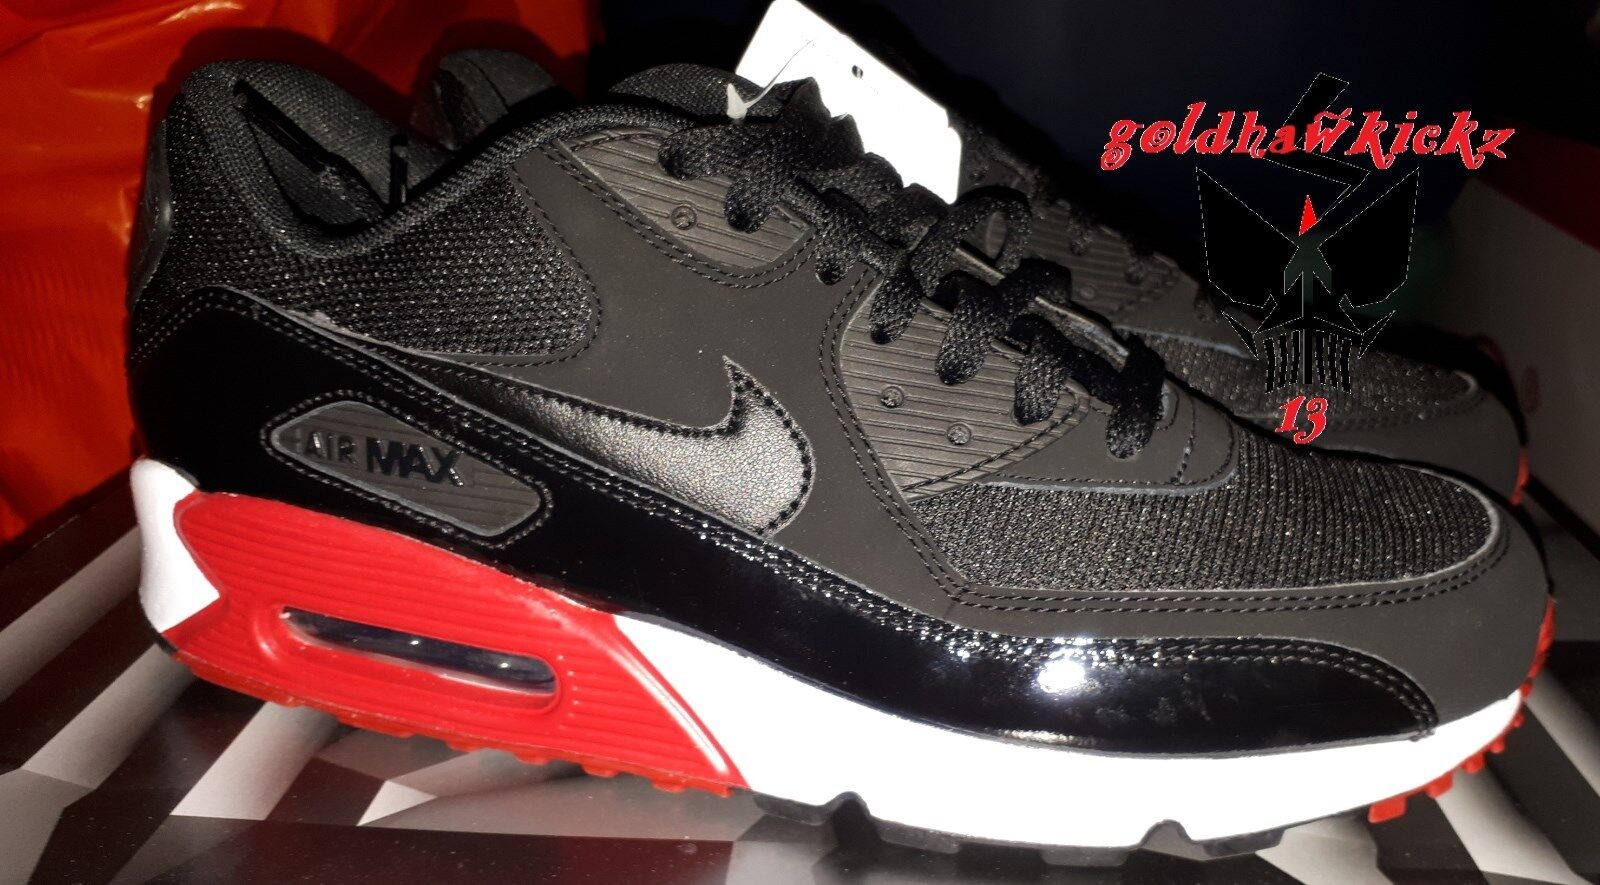 Nike air max 90 breds black red 537384 066 patent leather airmax Essential